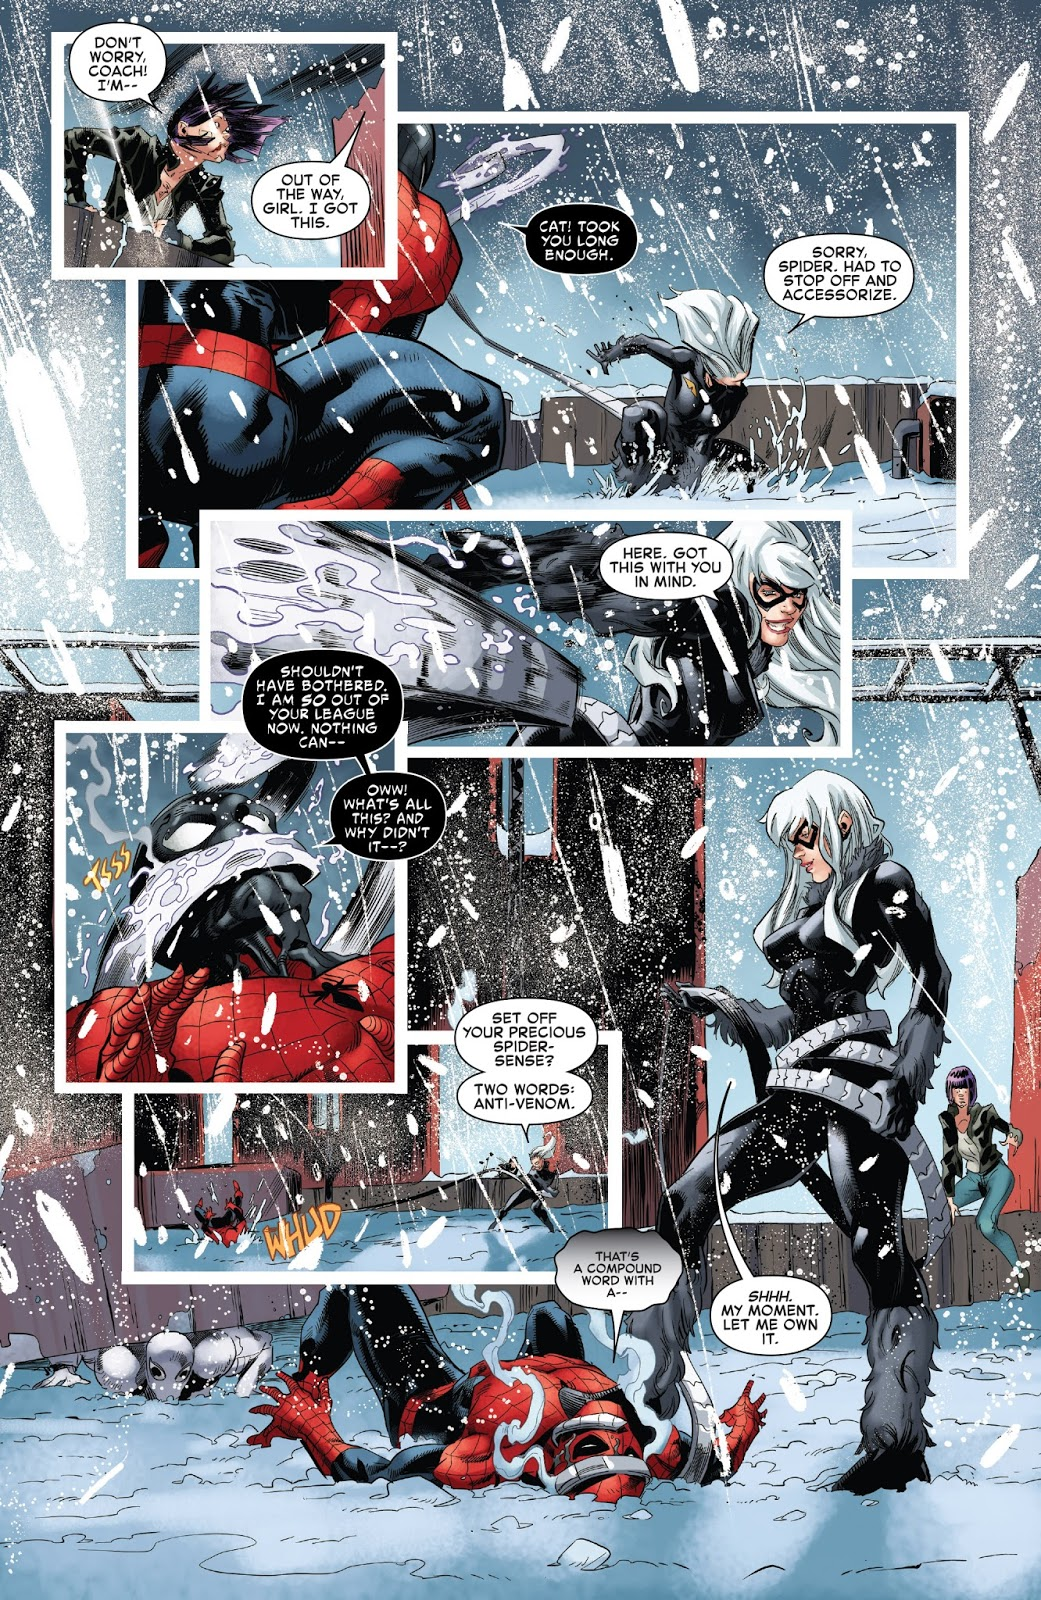 Spider-Man And Agent Anti-Venom VS Goblin King – Comicnewbies